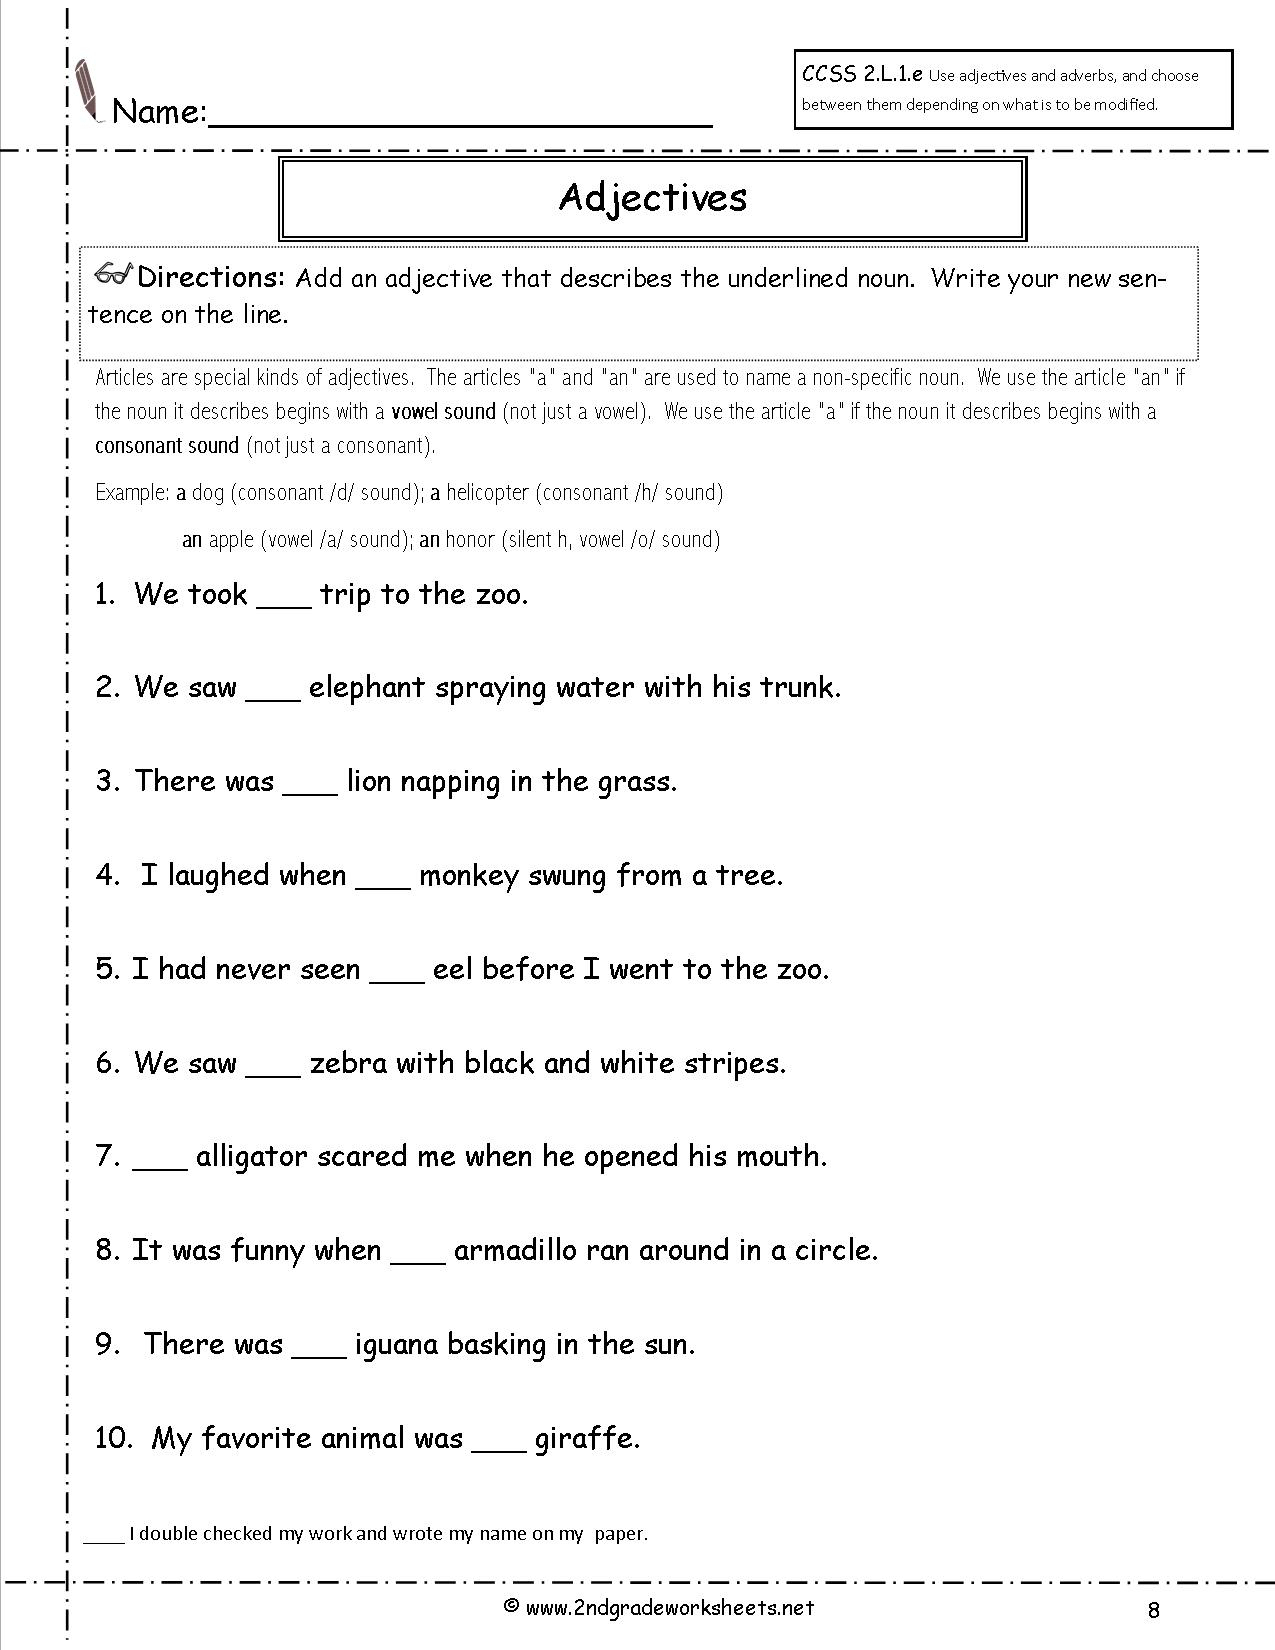 Free Printable Grammar Worksheets For Highschool Students